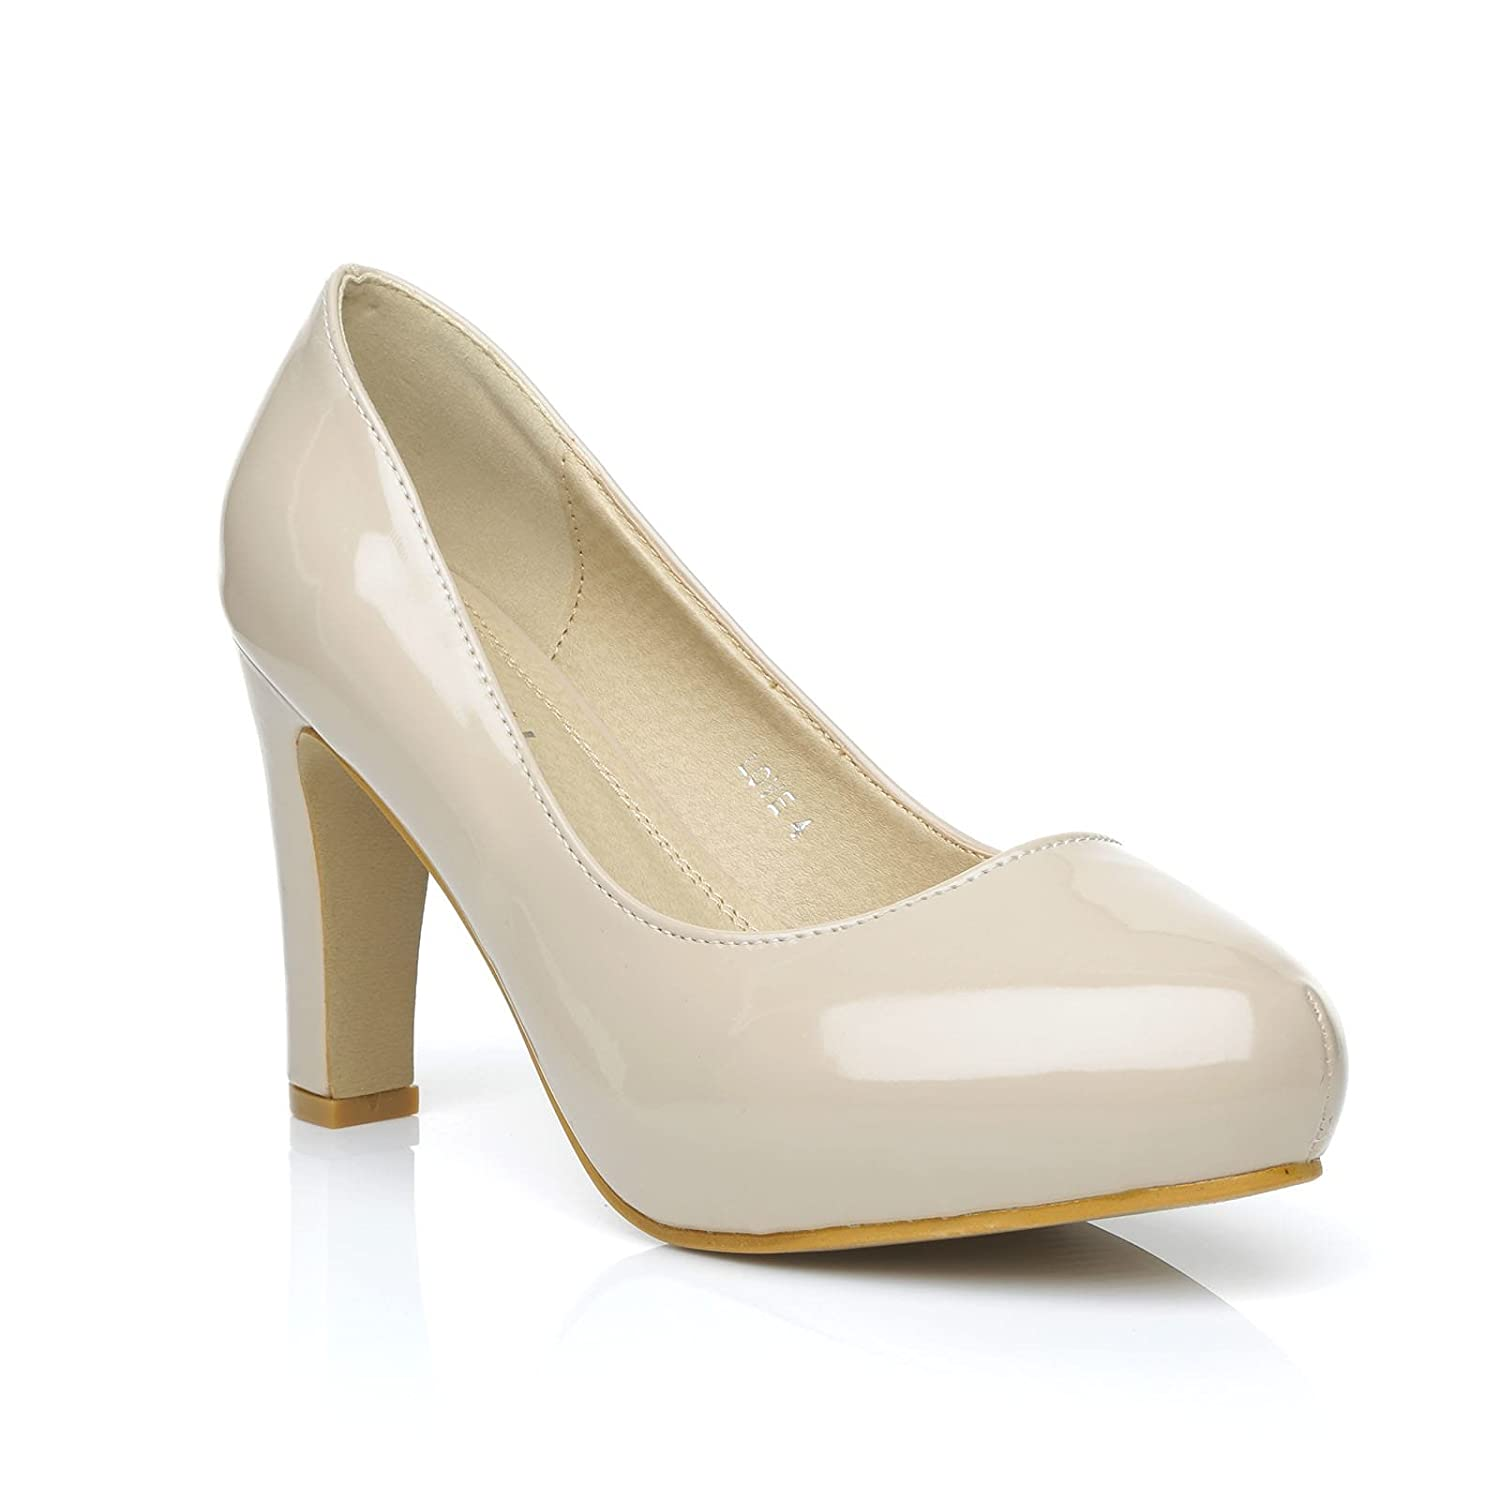 Love Nude Patent PU Leather Slim-Block High Heel Platform Court Shoes:  Amazon.co.uk: Shoes & Bags